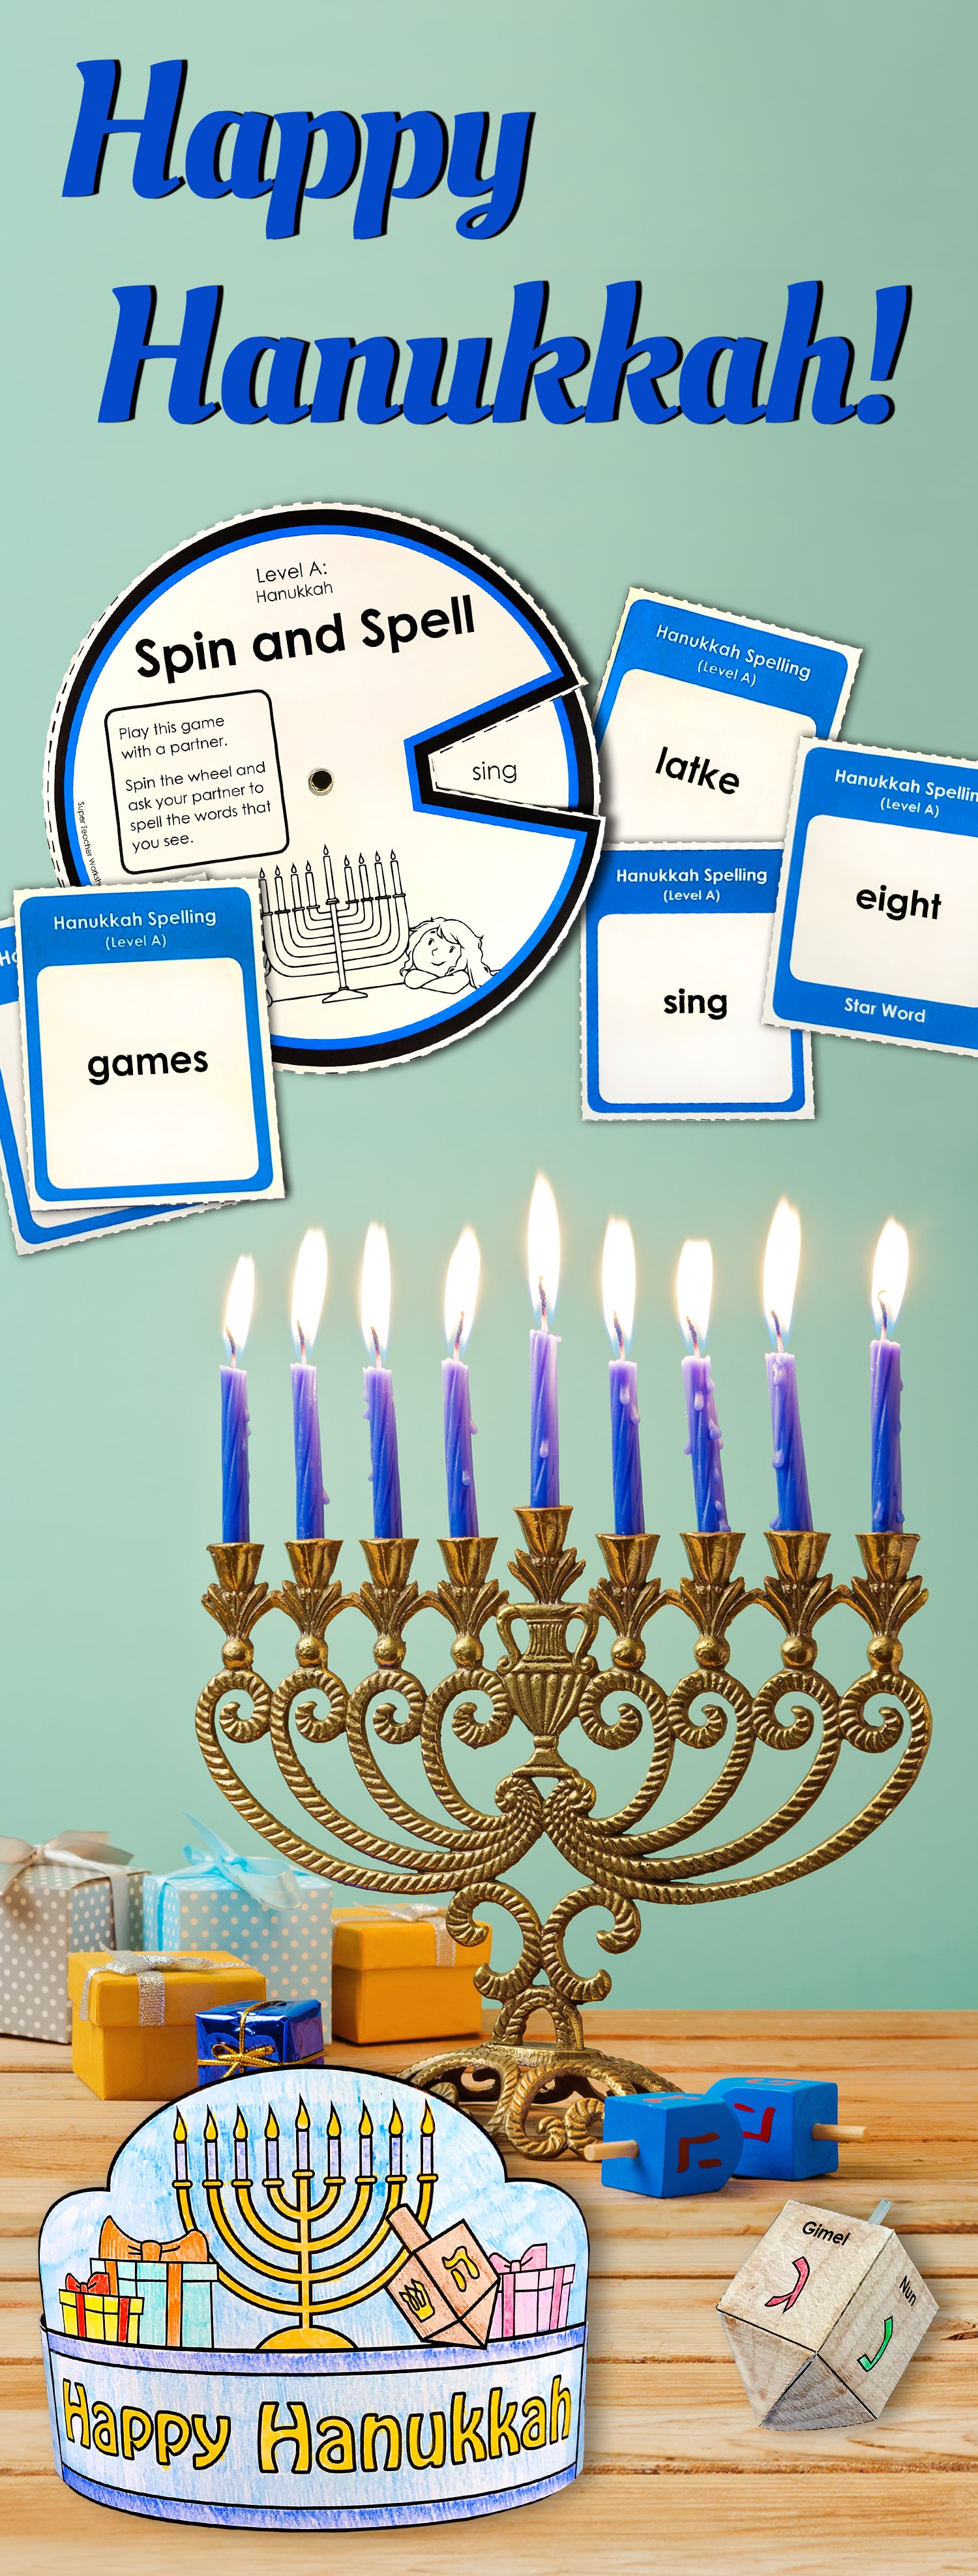 Hanukkah Games And Activities For Kids